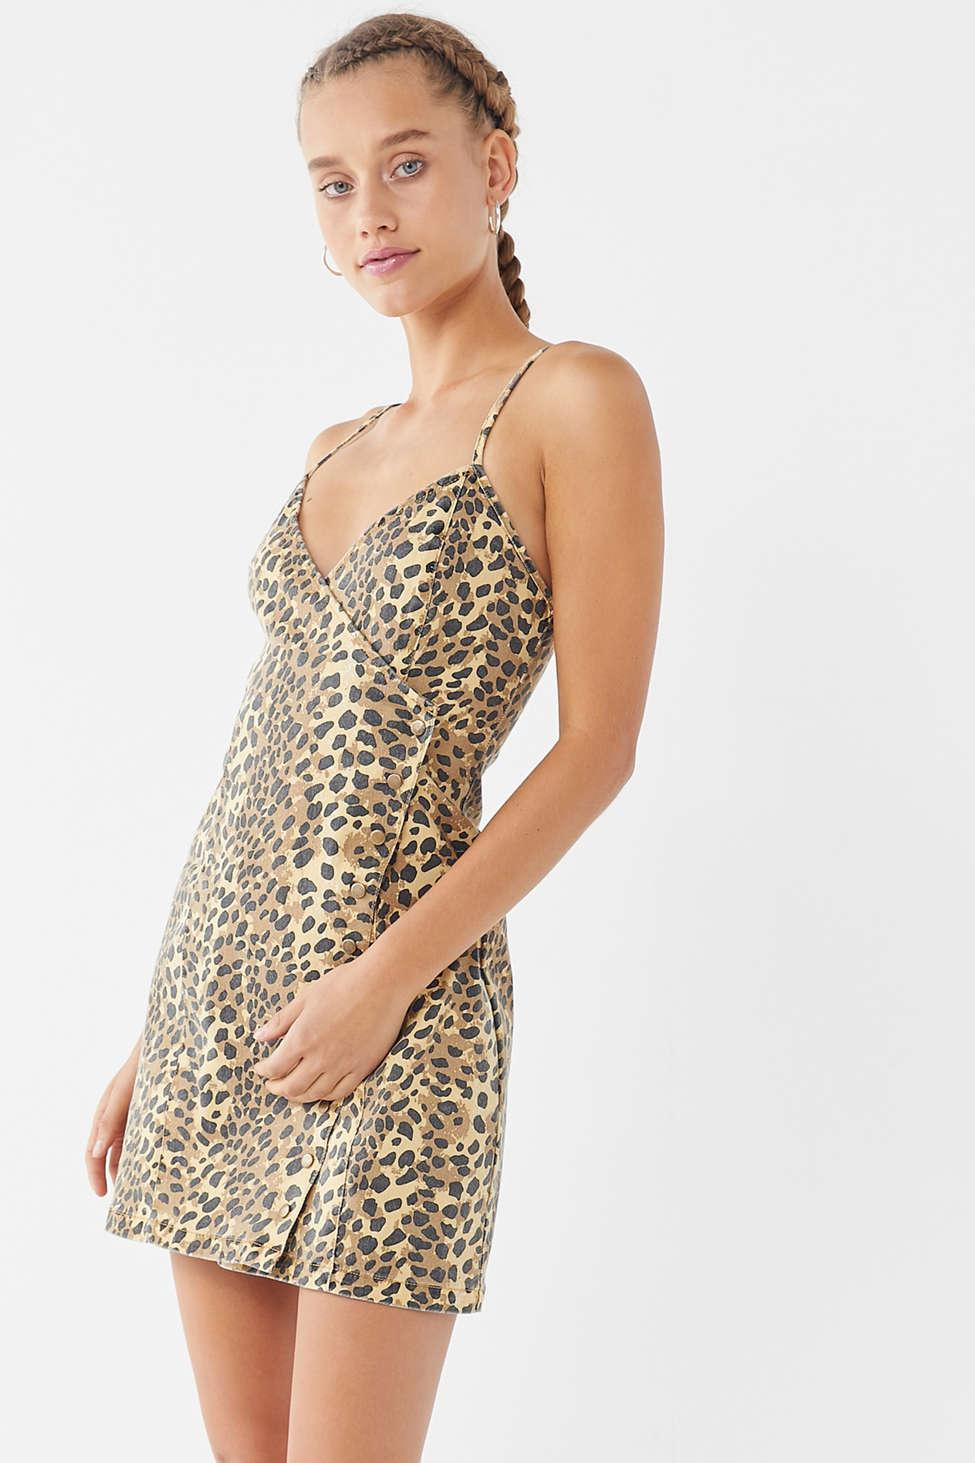 Lyst - MINKPINK Jagger Leopard Print Denim Wrap Dress d330527b6